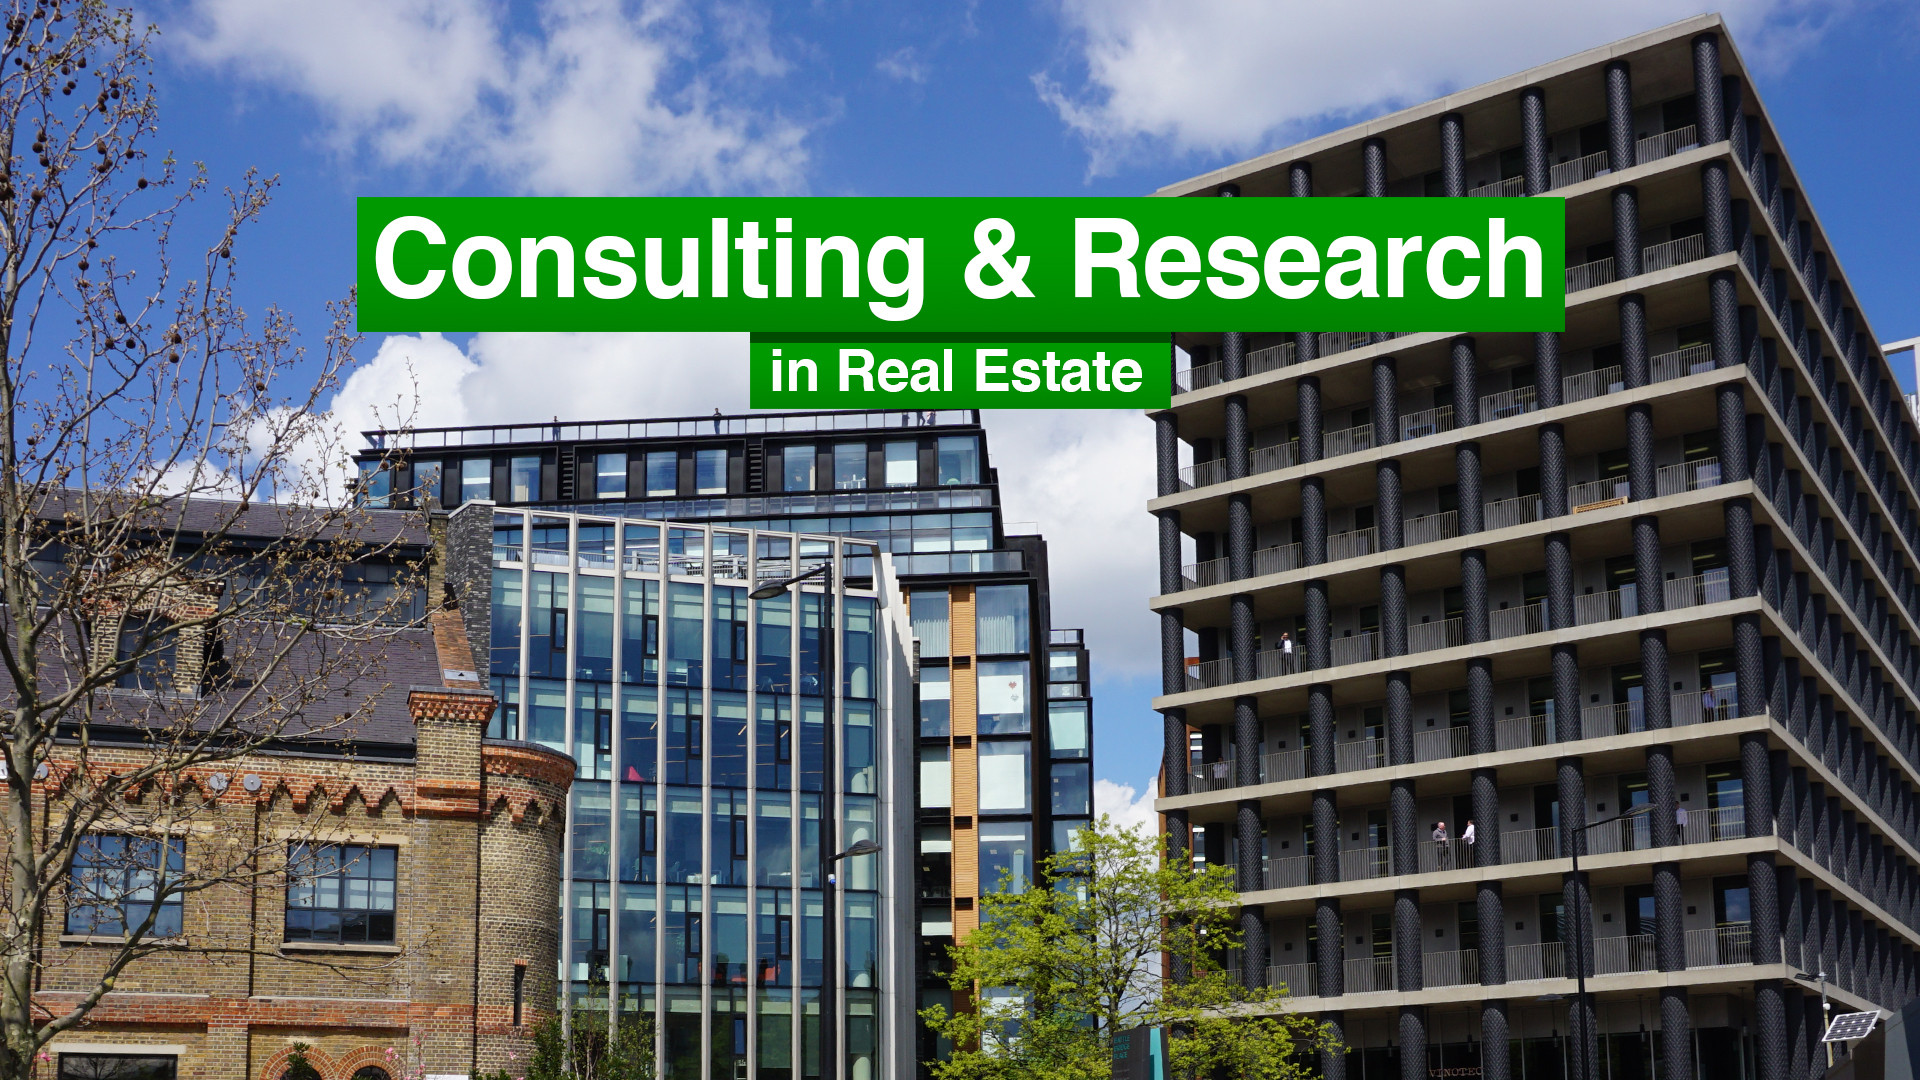 Hero Image Consulting & Research copy.jp